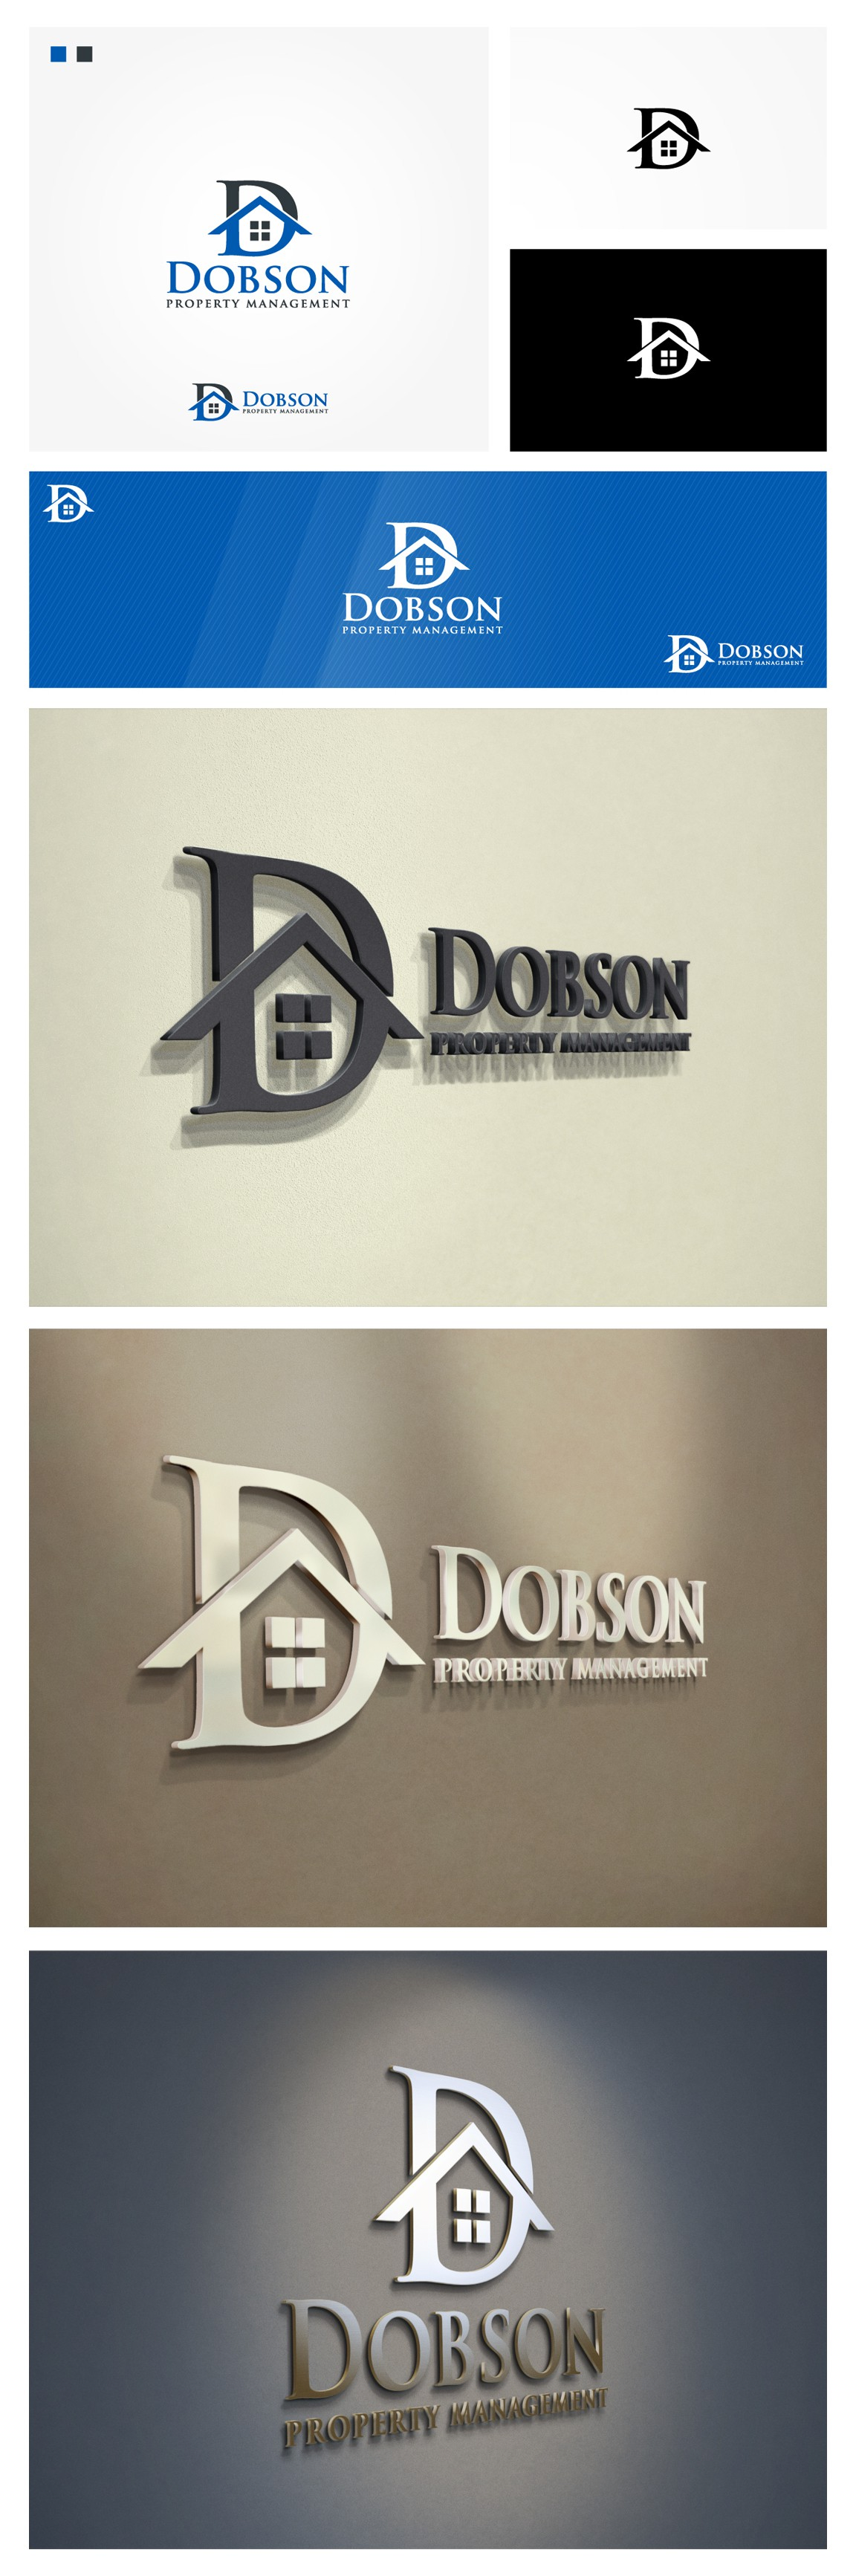 Help Real Estate Investment Company with a new logo